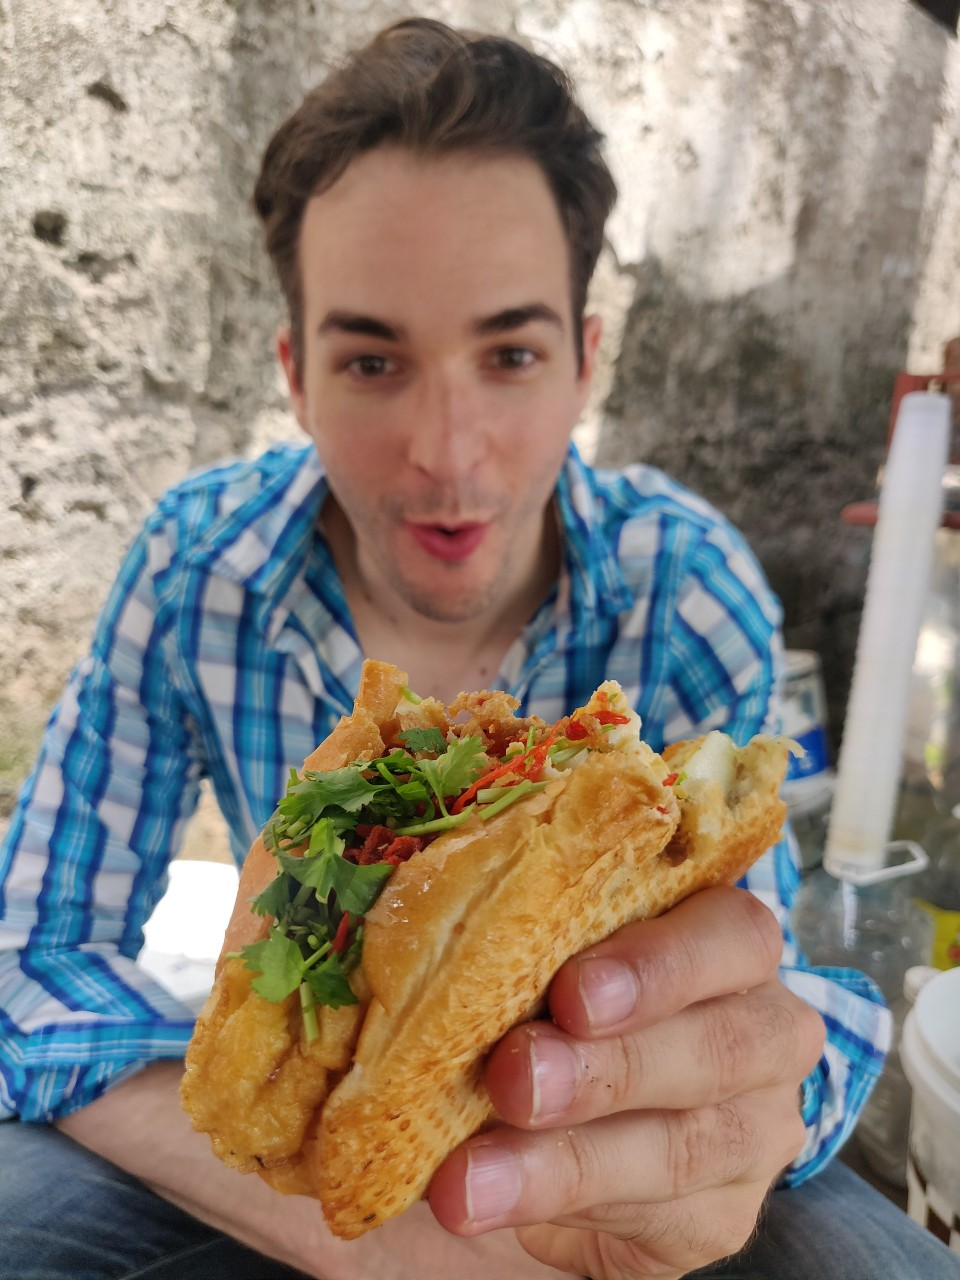 Banh mi is one of the favorite dish of Will Courageux in Vietnam